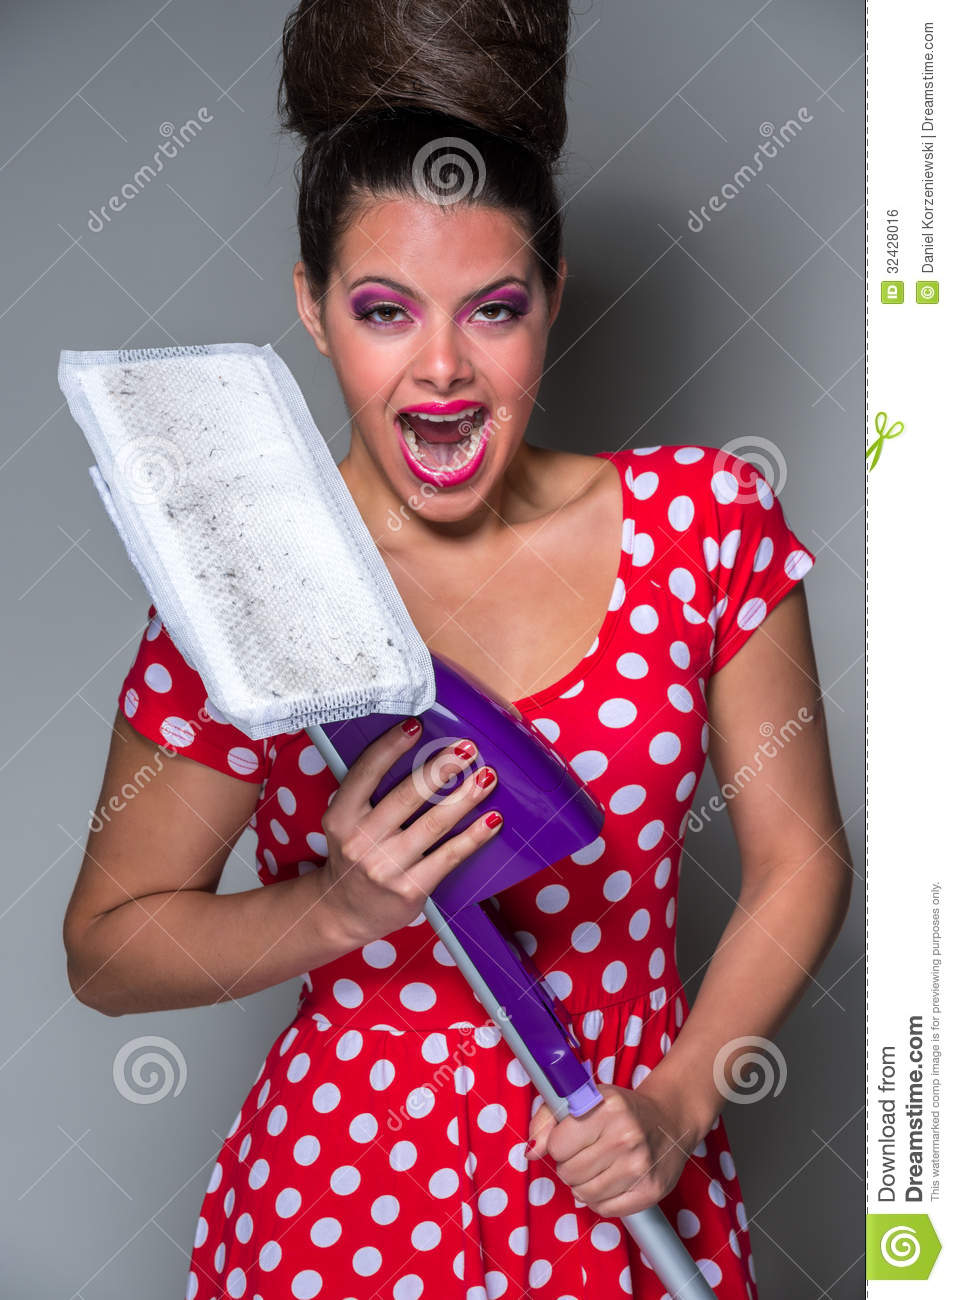 Funny housewife royalty free stock image image 32428016 for Modern housewife